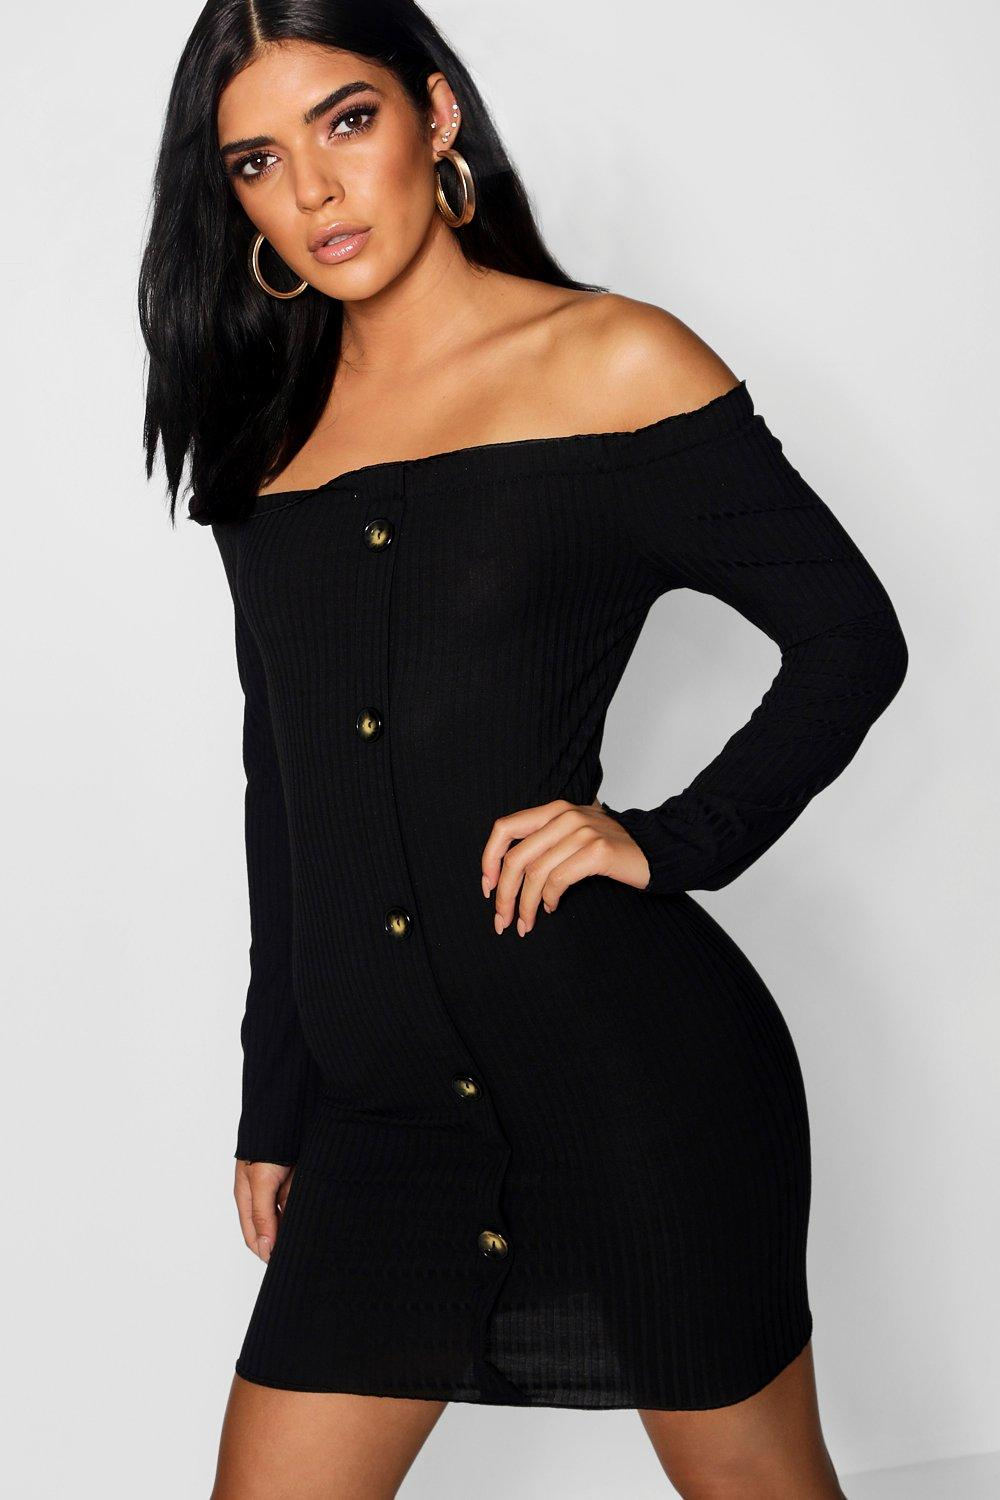 989101c5a5 Horn Button Off The Shoulder Rib Dress. Hover to zoom